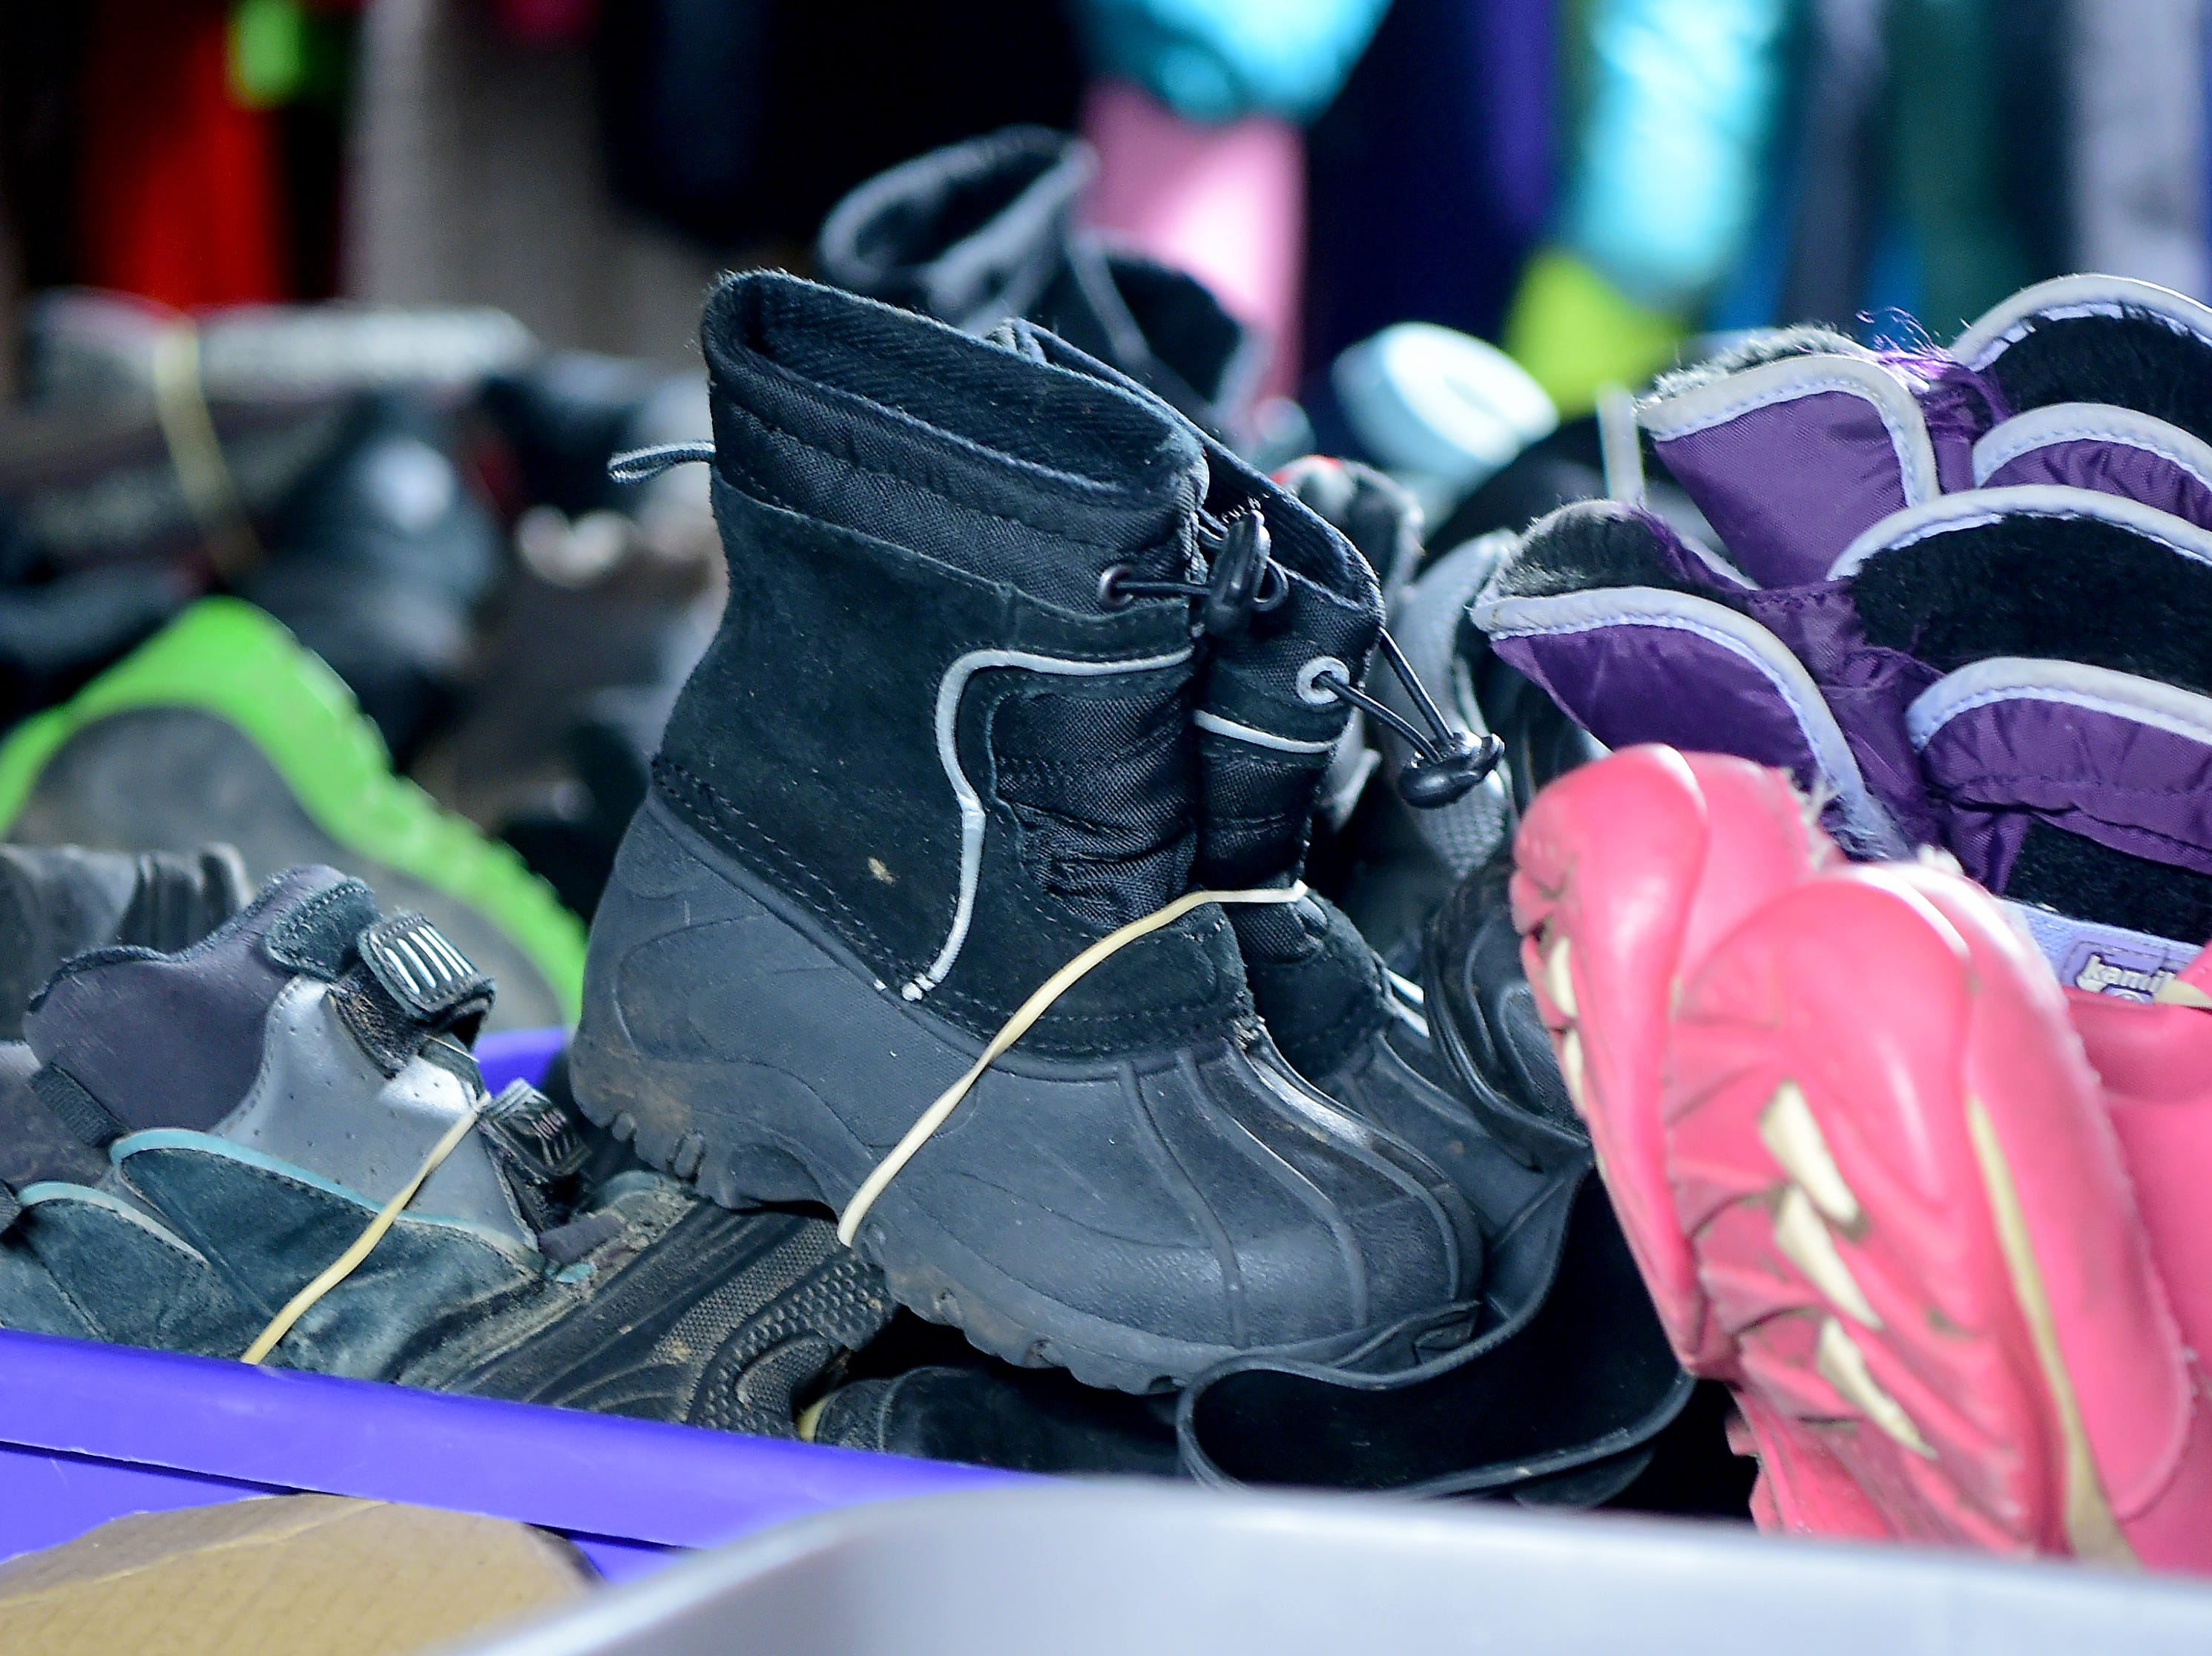 Donated kids boots at Catholic Charities of Tompkins/Tioga in Ithaca on Thursday, November 29, 2018.